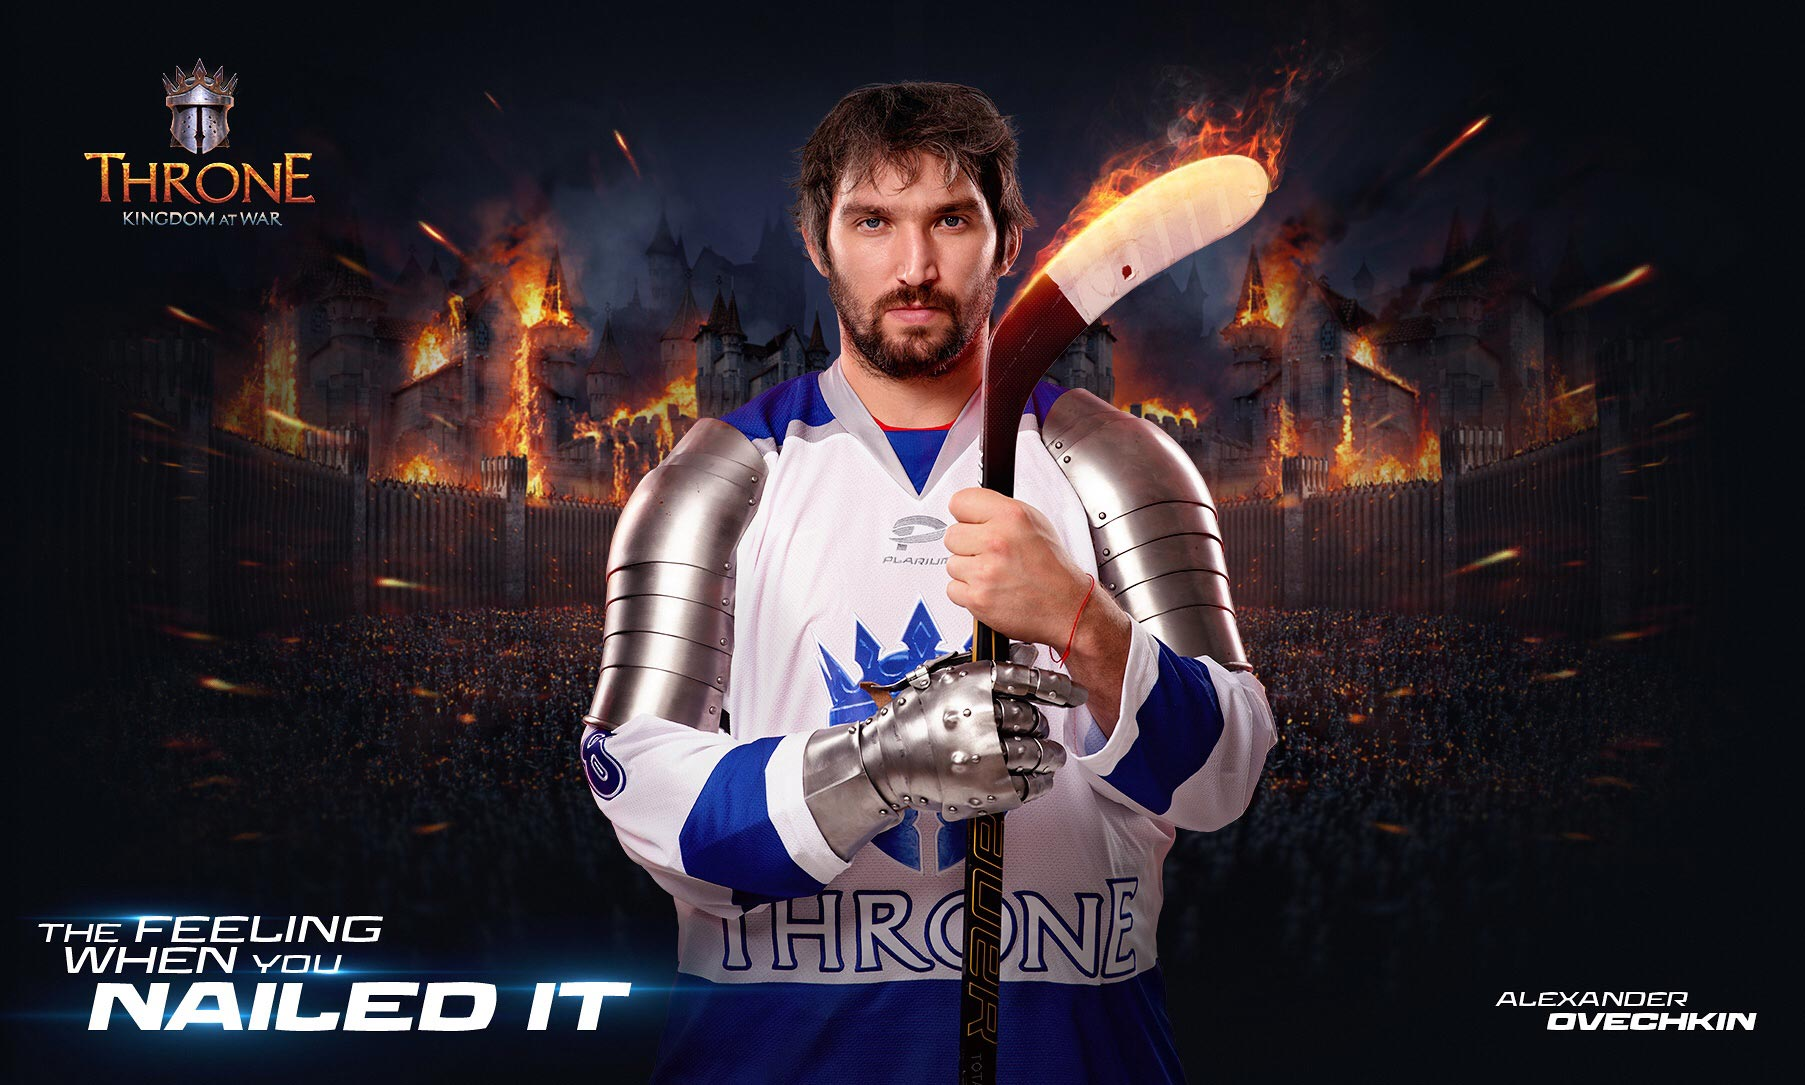 ovechkin-throne-kingdom-at-war1